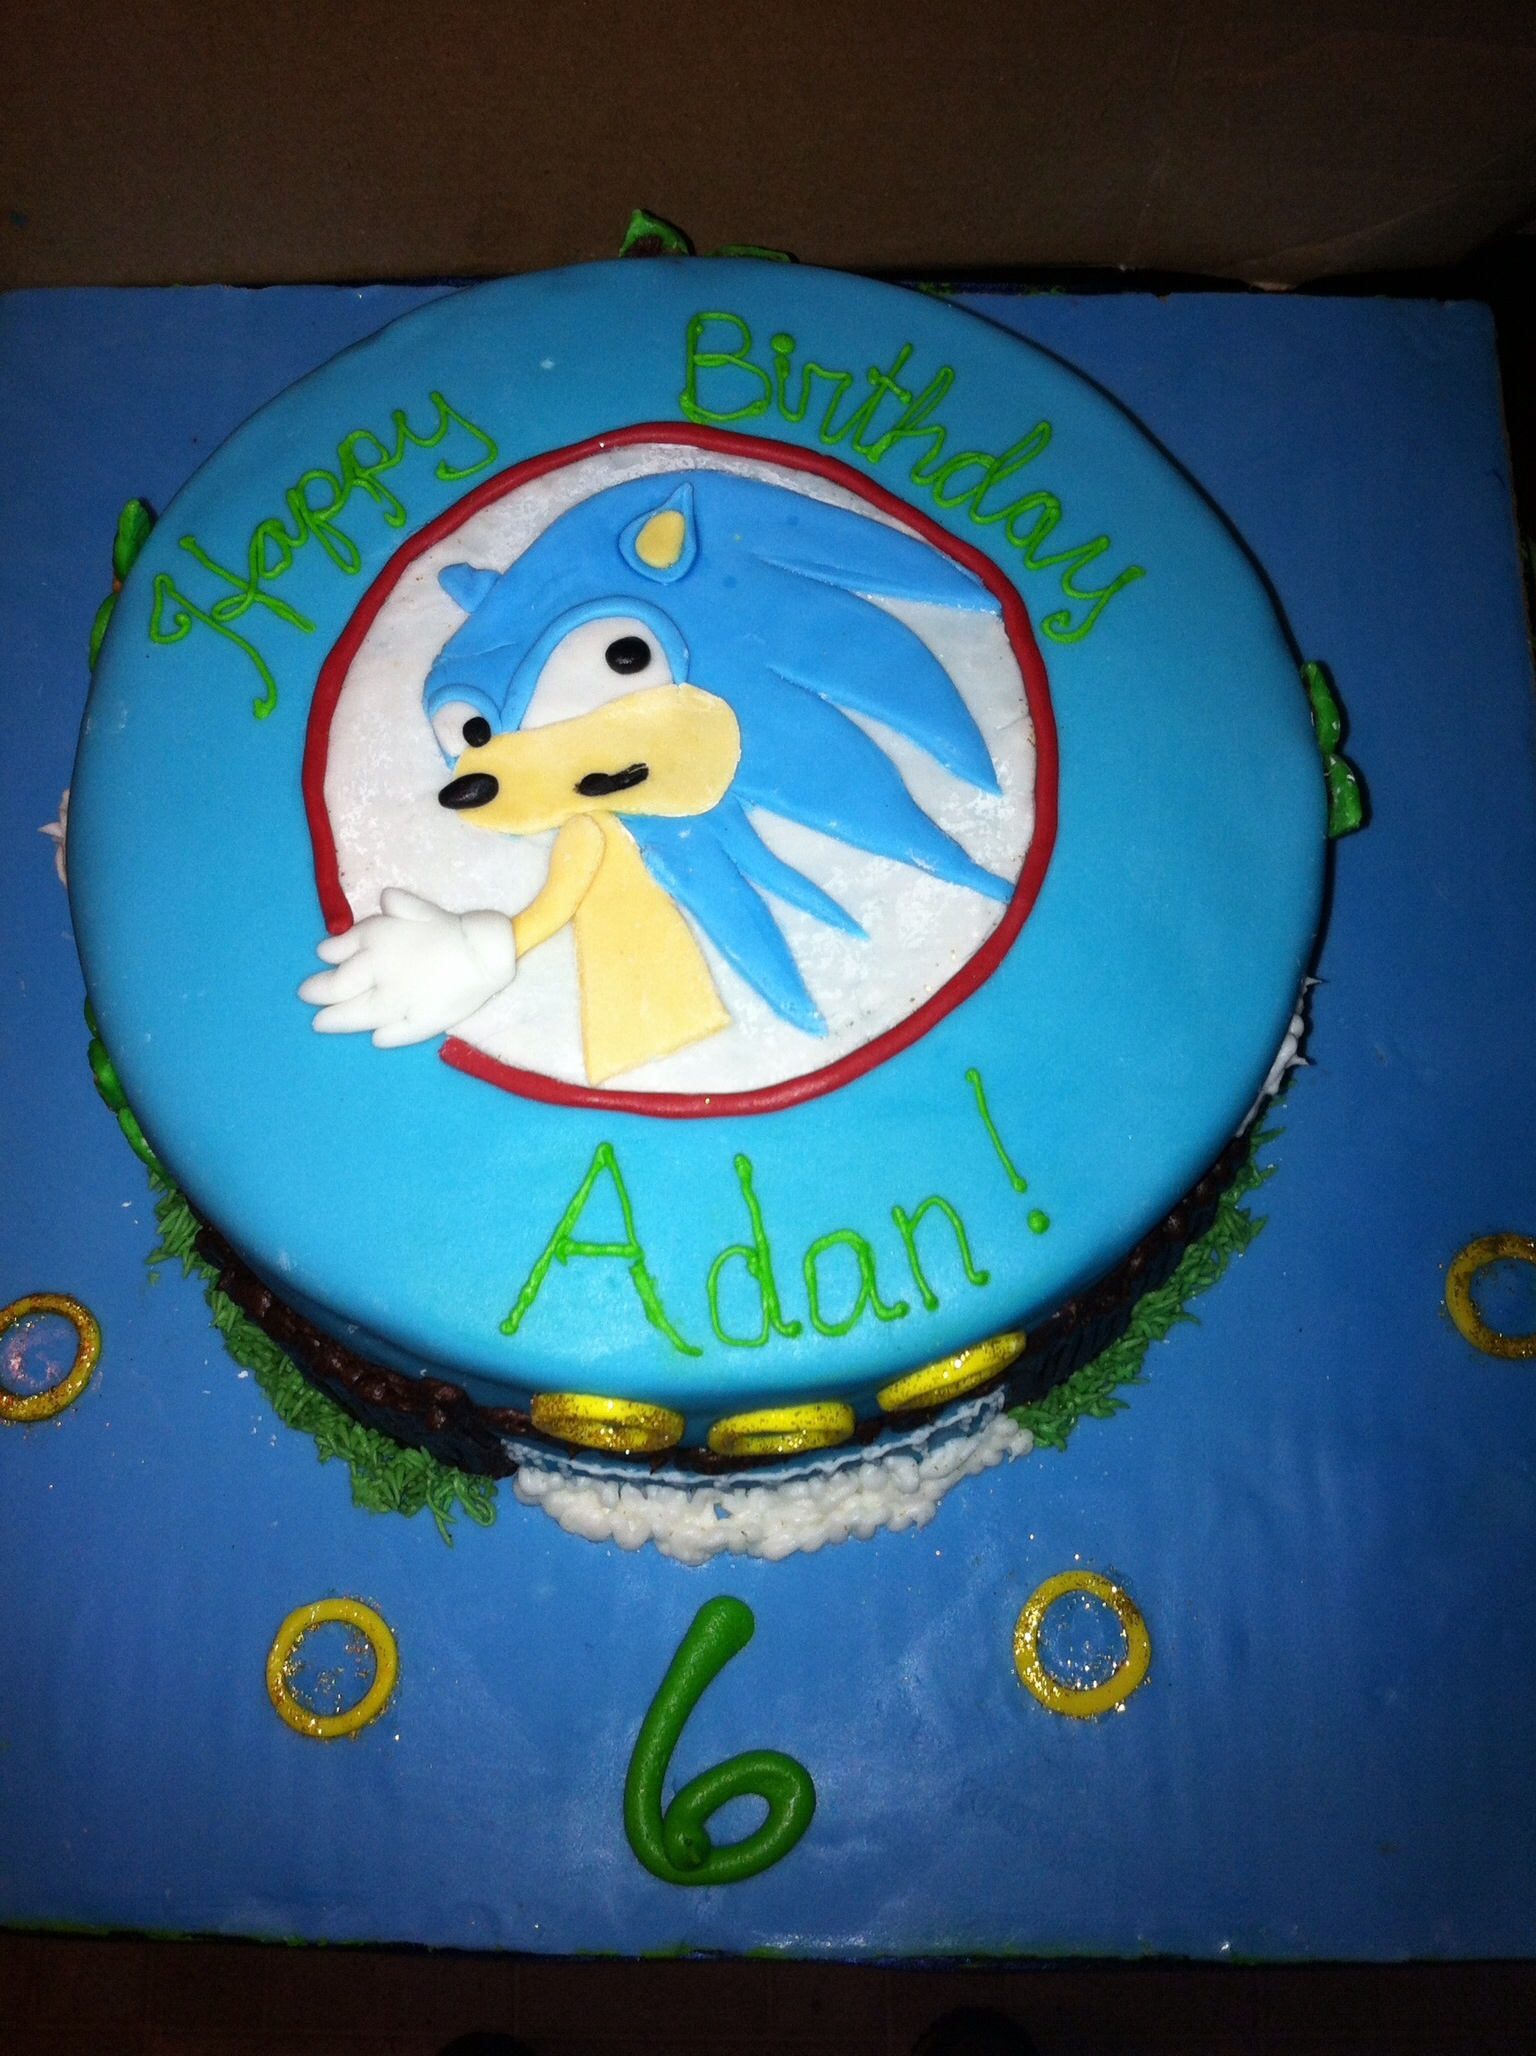 Sonic The Hedgehog Cake With Fondant And Buttercream Sonic the hedgehog cake with fondant and buttercream